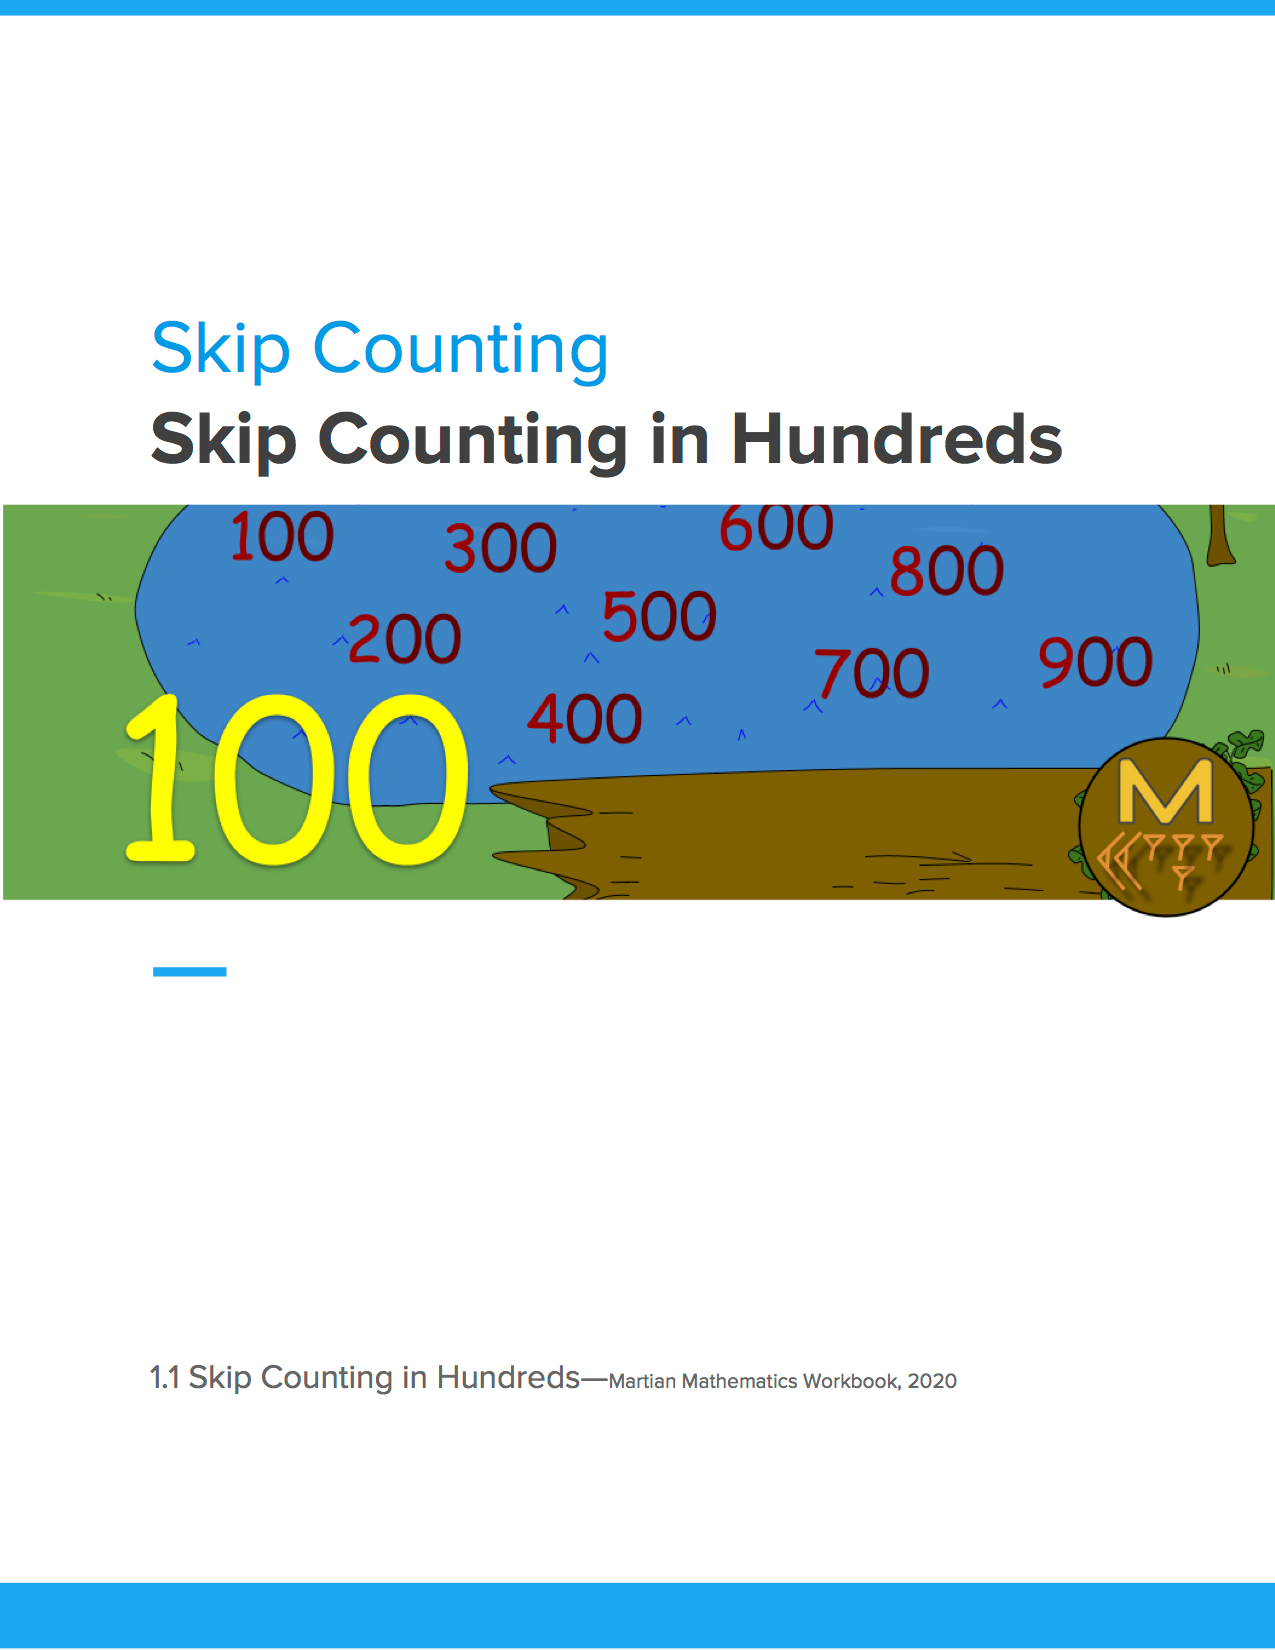 Skip Counting in Hundreds